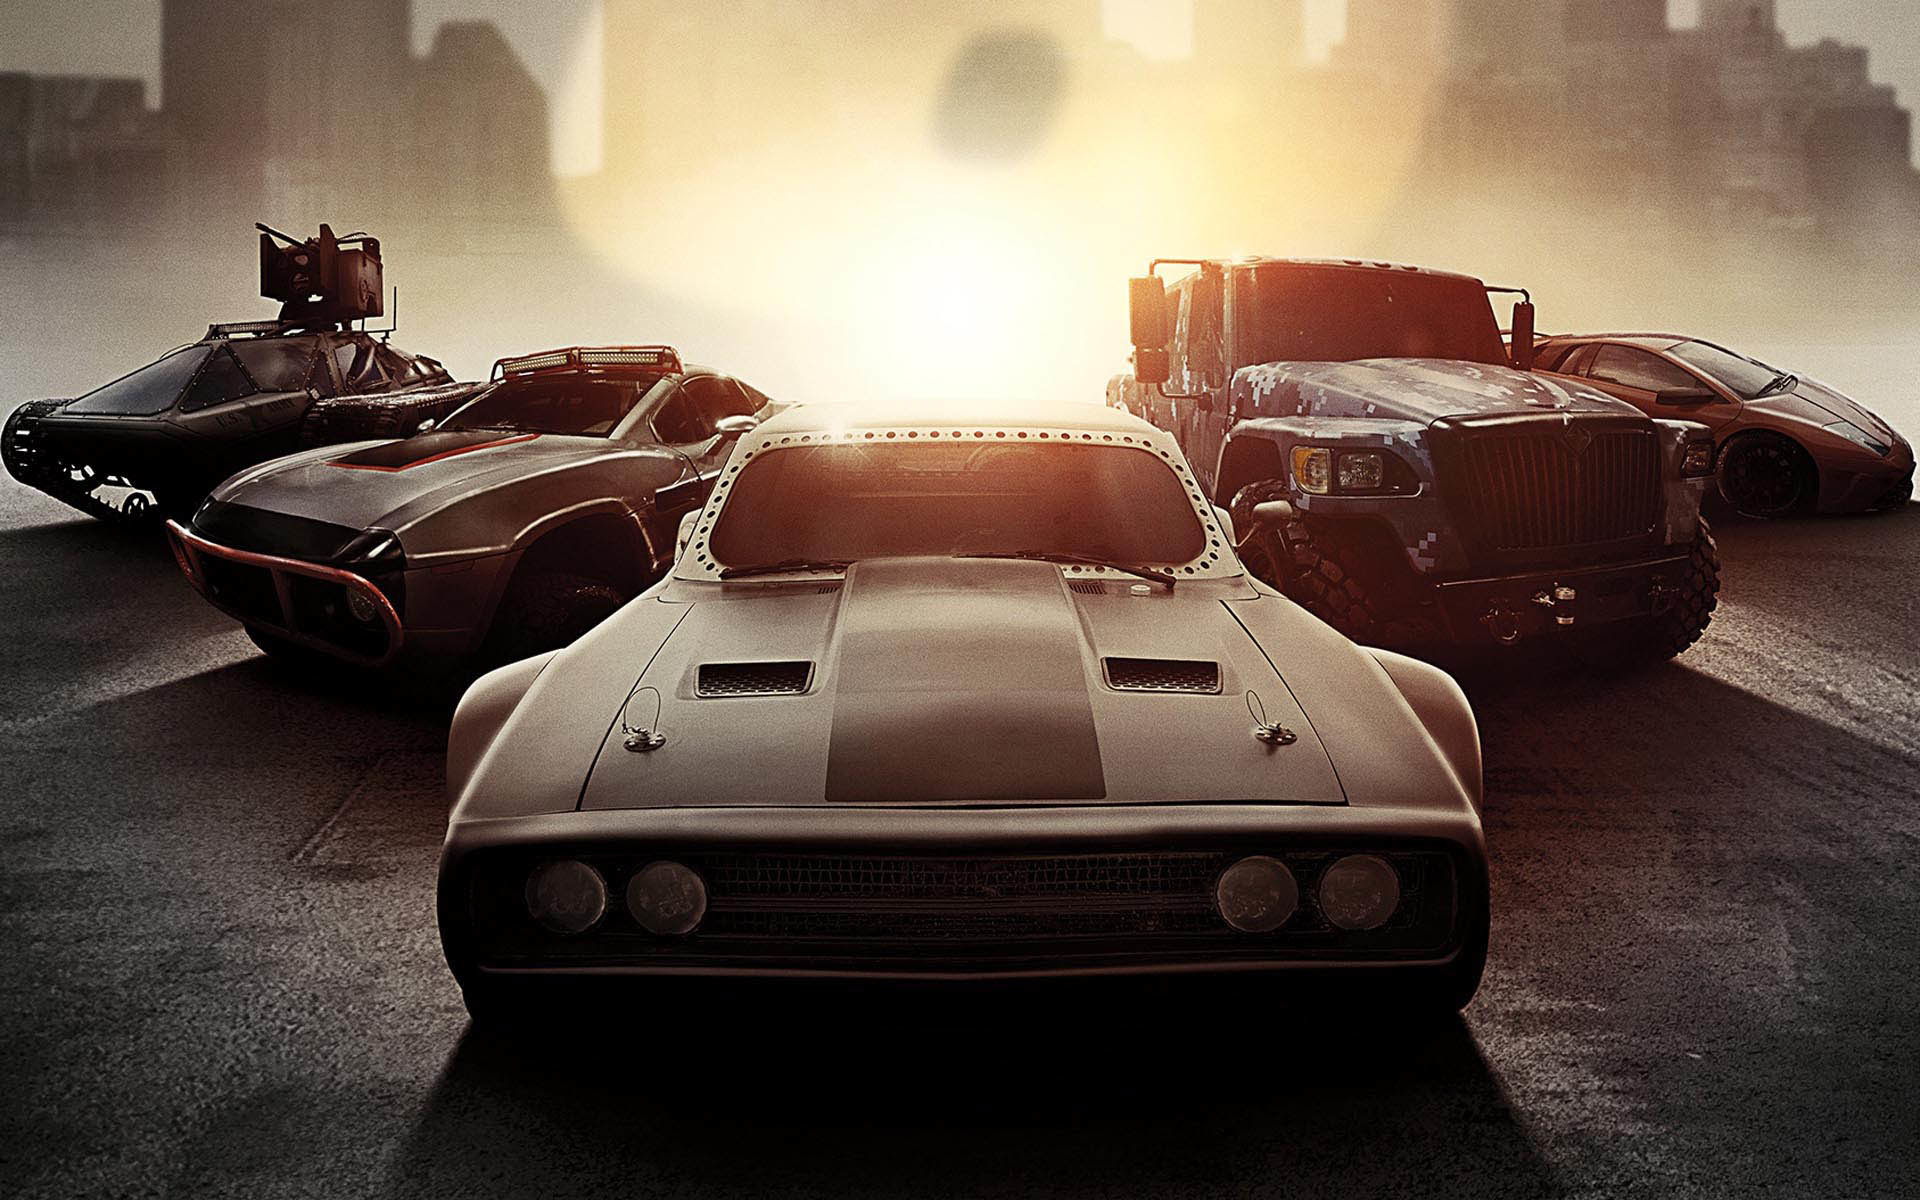 3400x1900 Fast Furious HD Wallpapers Backgrounds Wallpaper